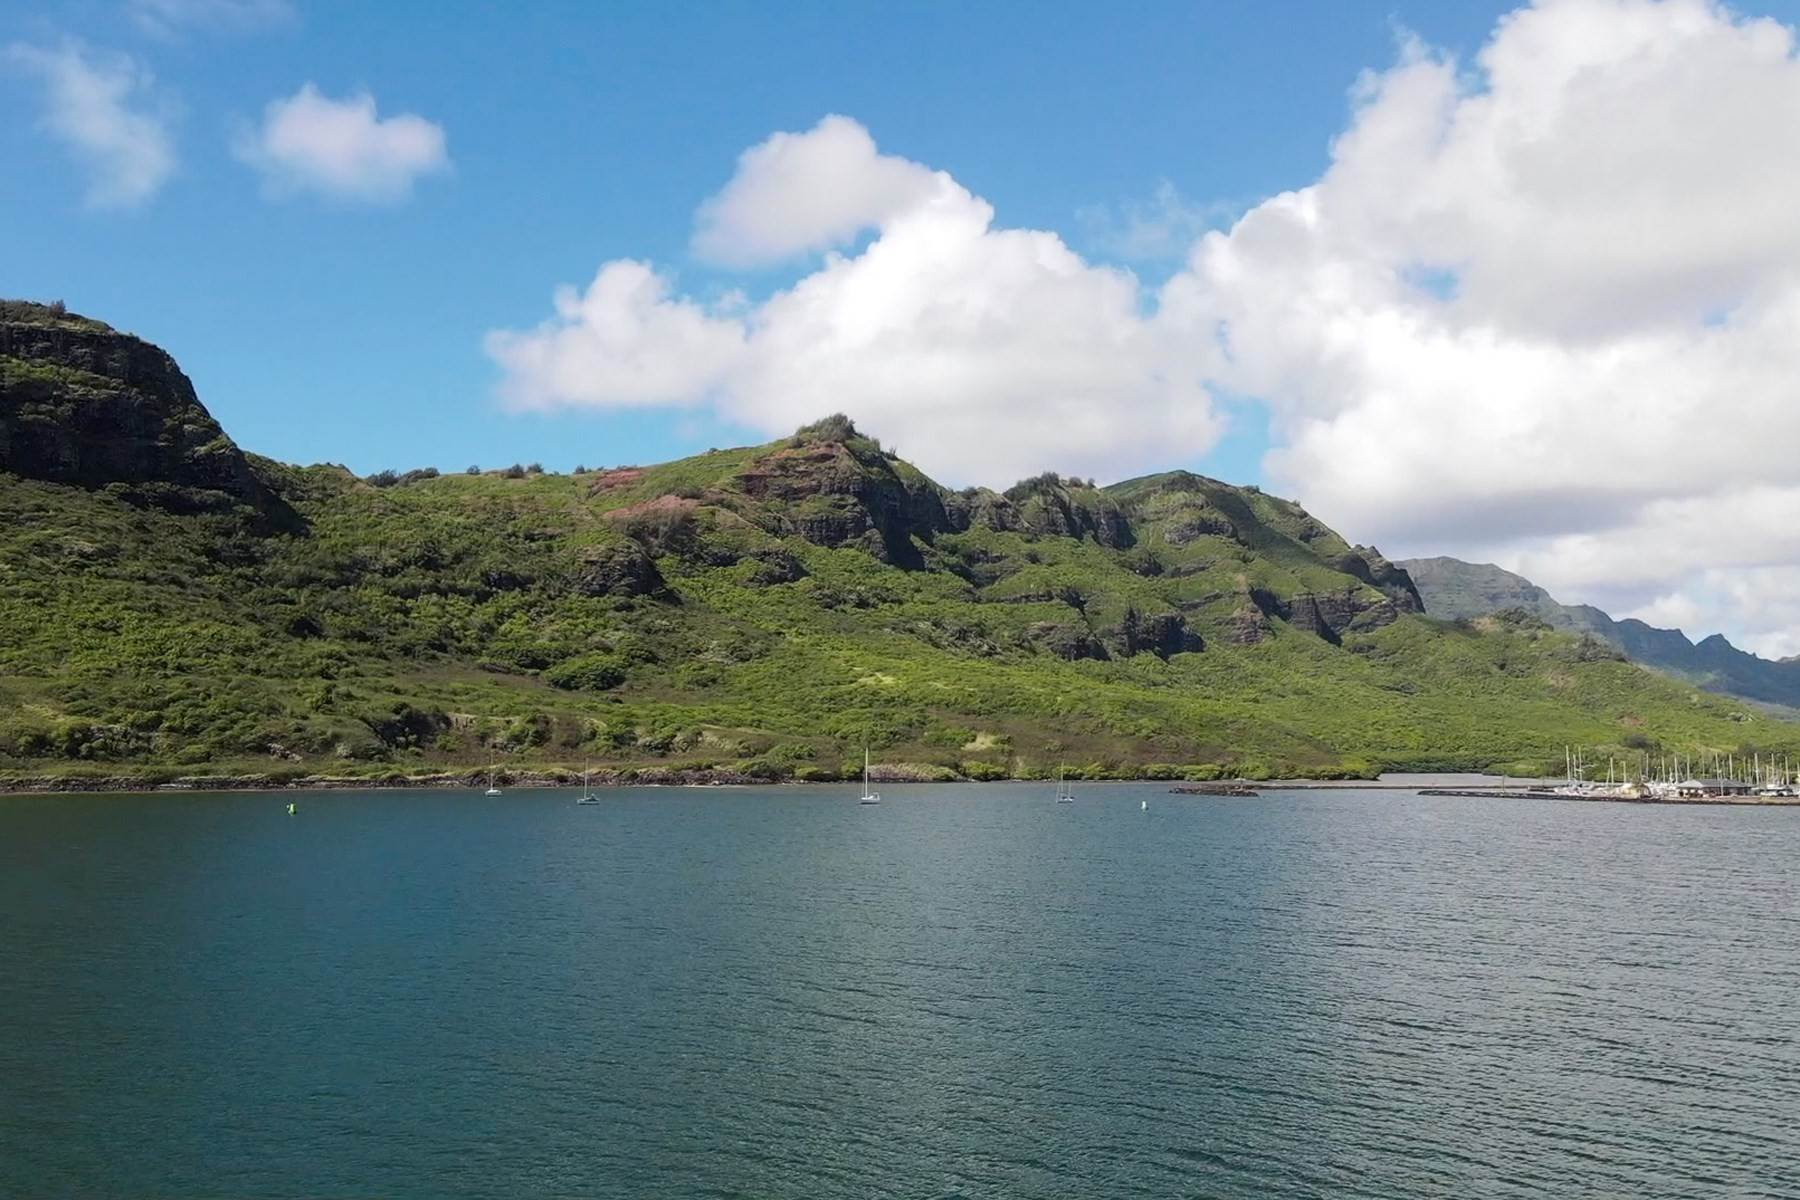 7. Land for Sale at NIUMALU Lihue, HI 96766 Niumalu Lihue, Hawaii 96766 United States